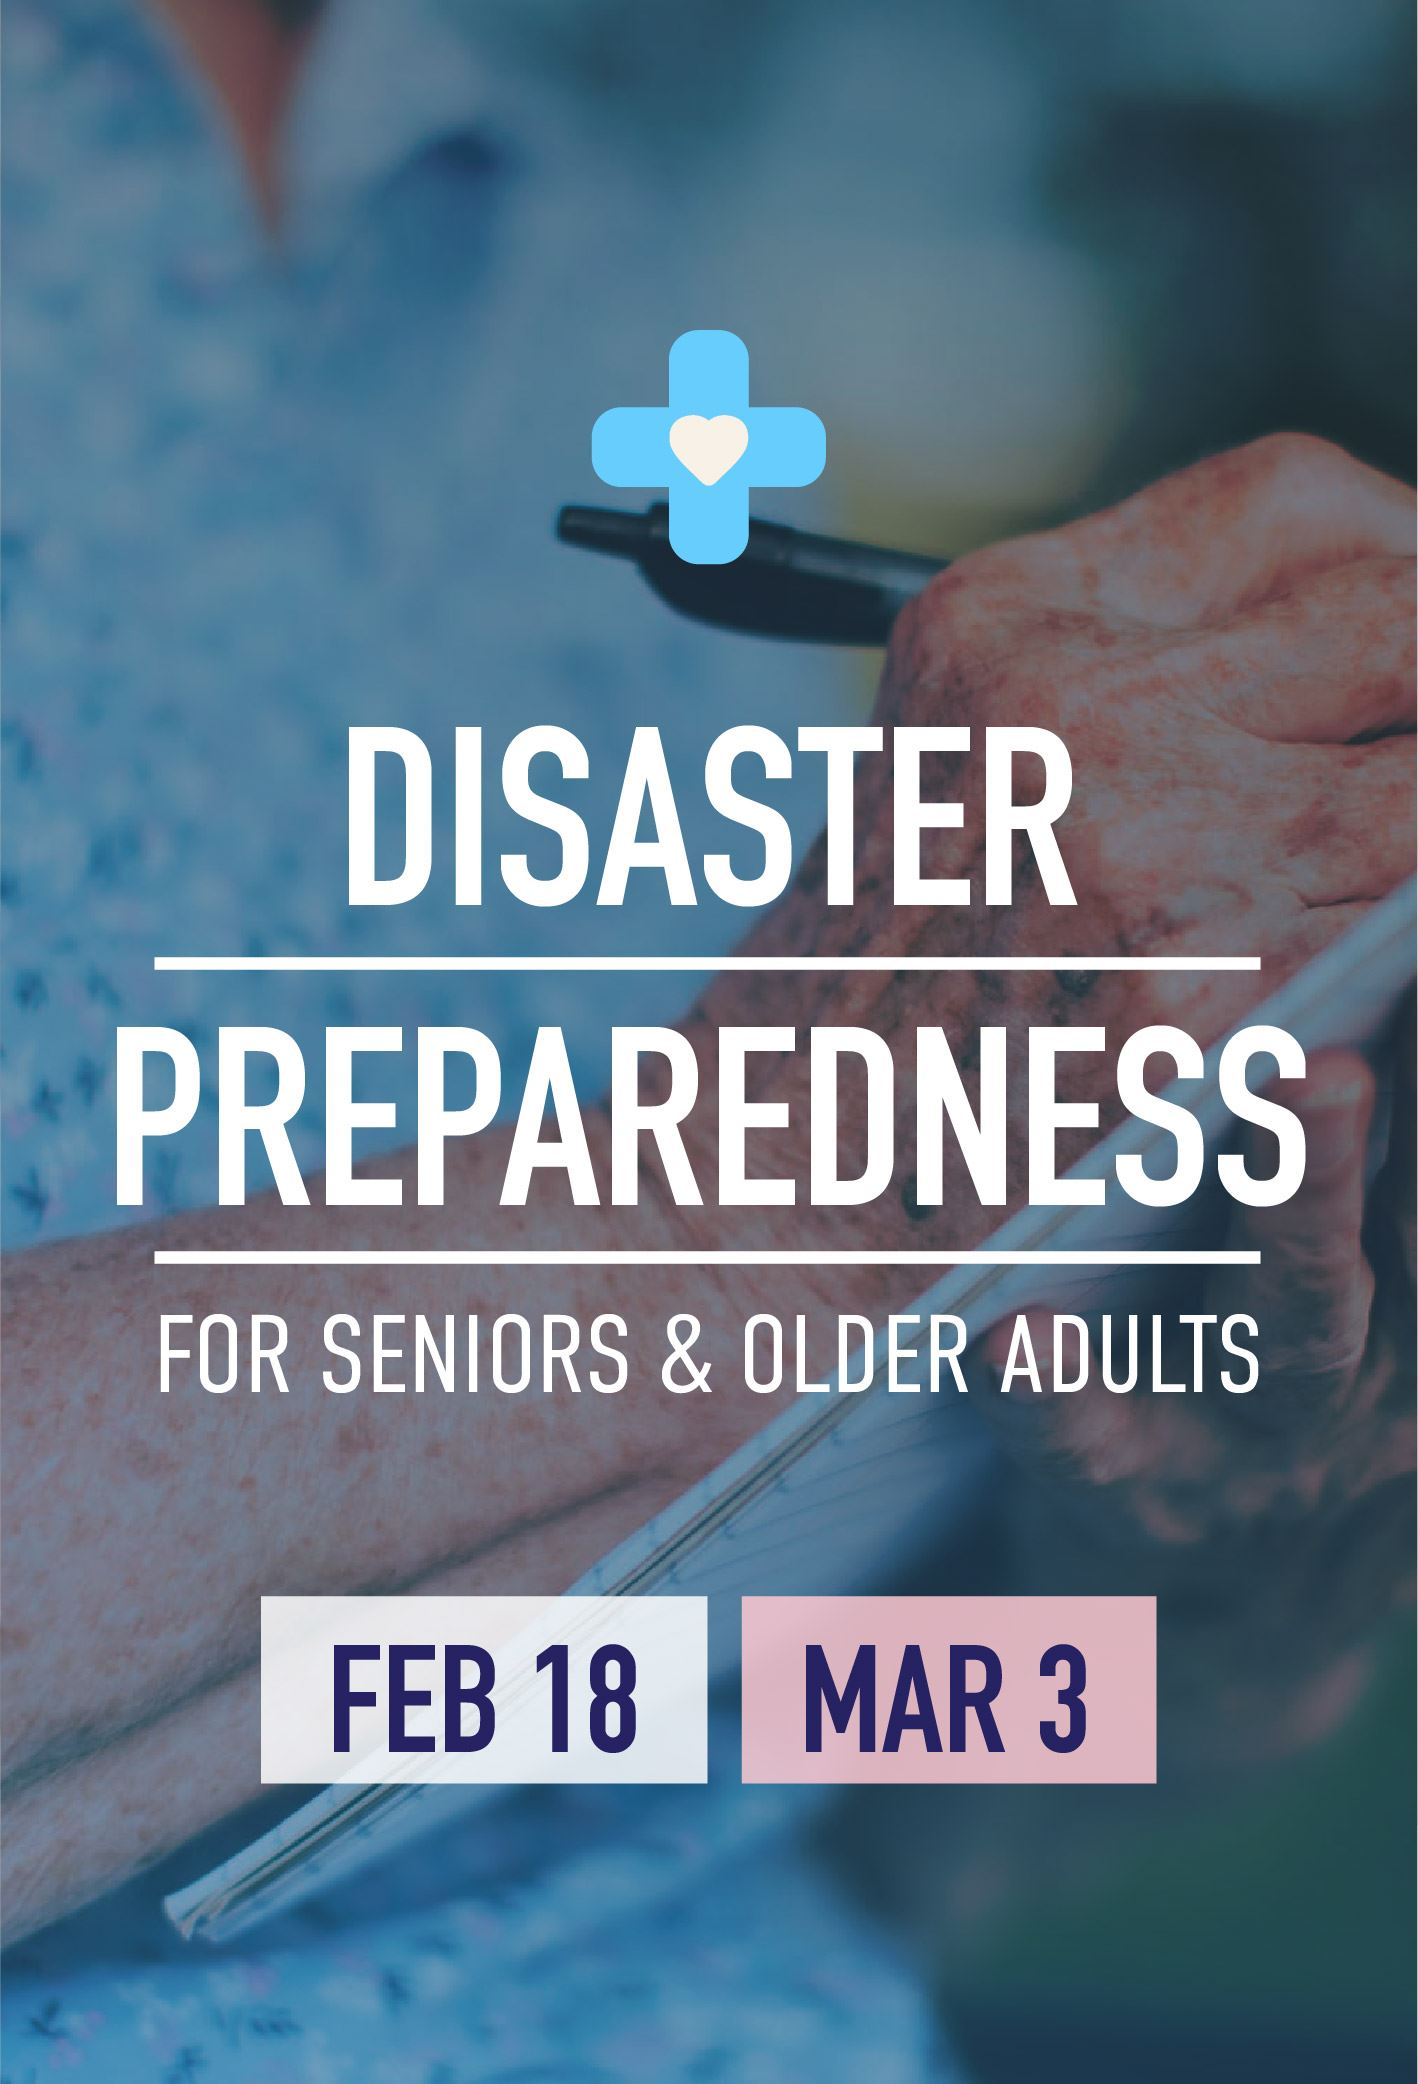 2020 Senior Preparedness Newsflash